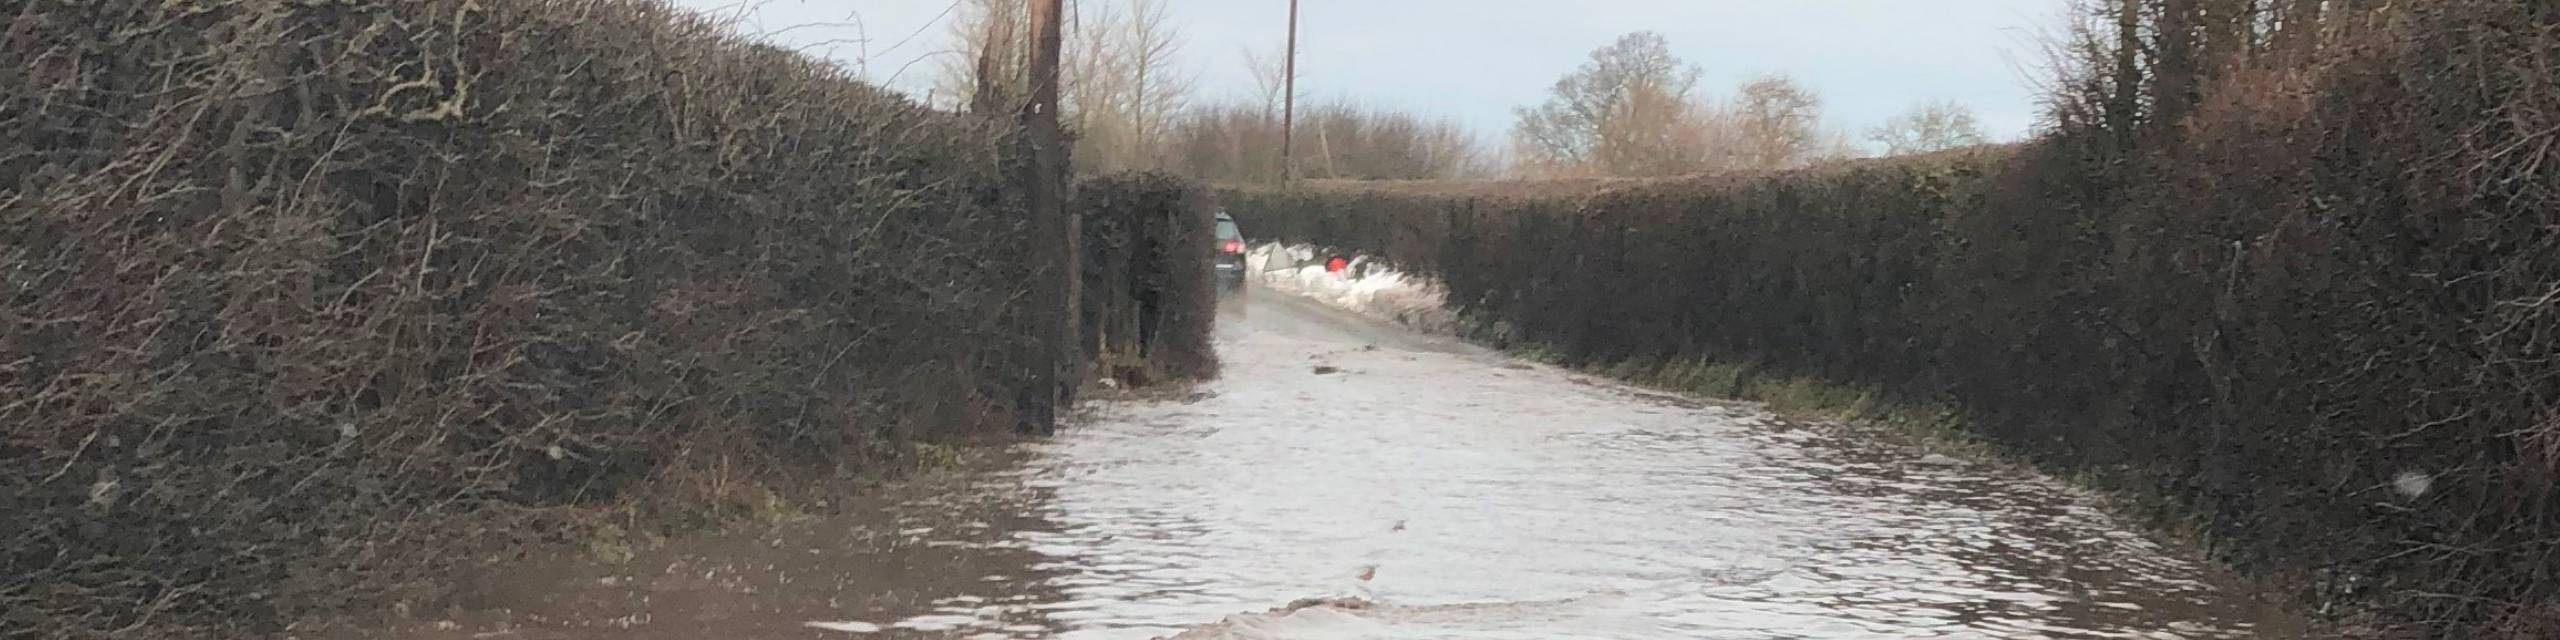 Photo of flooded lane